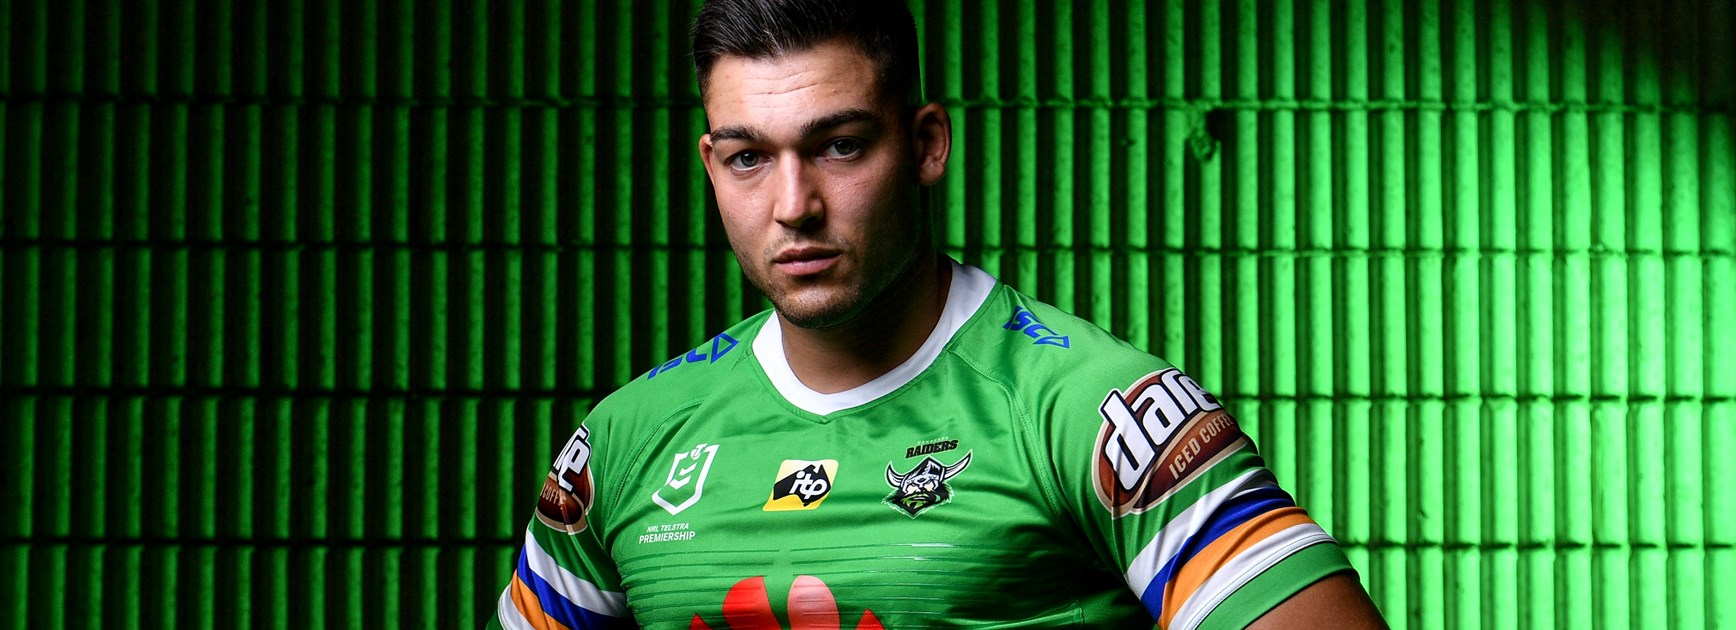 Raiders winger Nick Cotric.